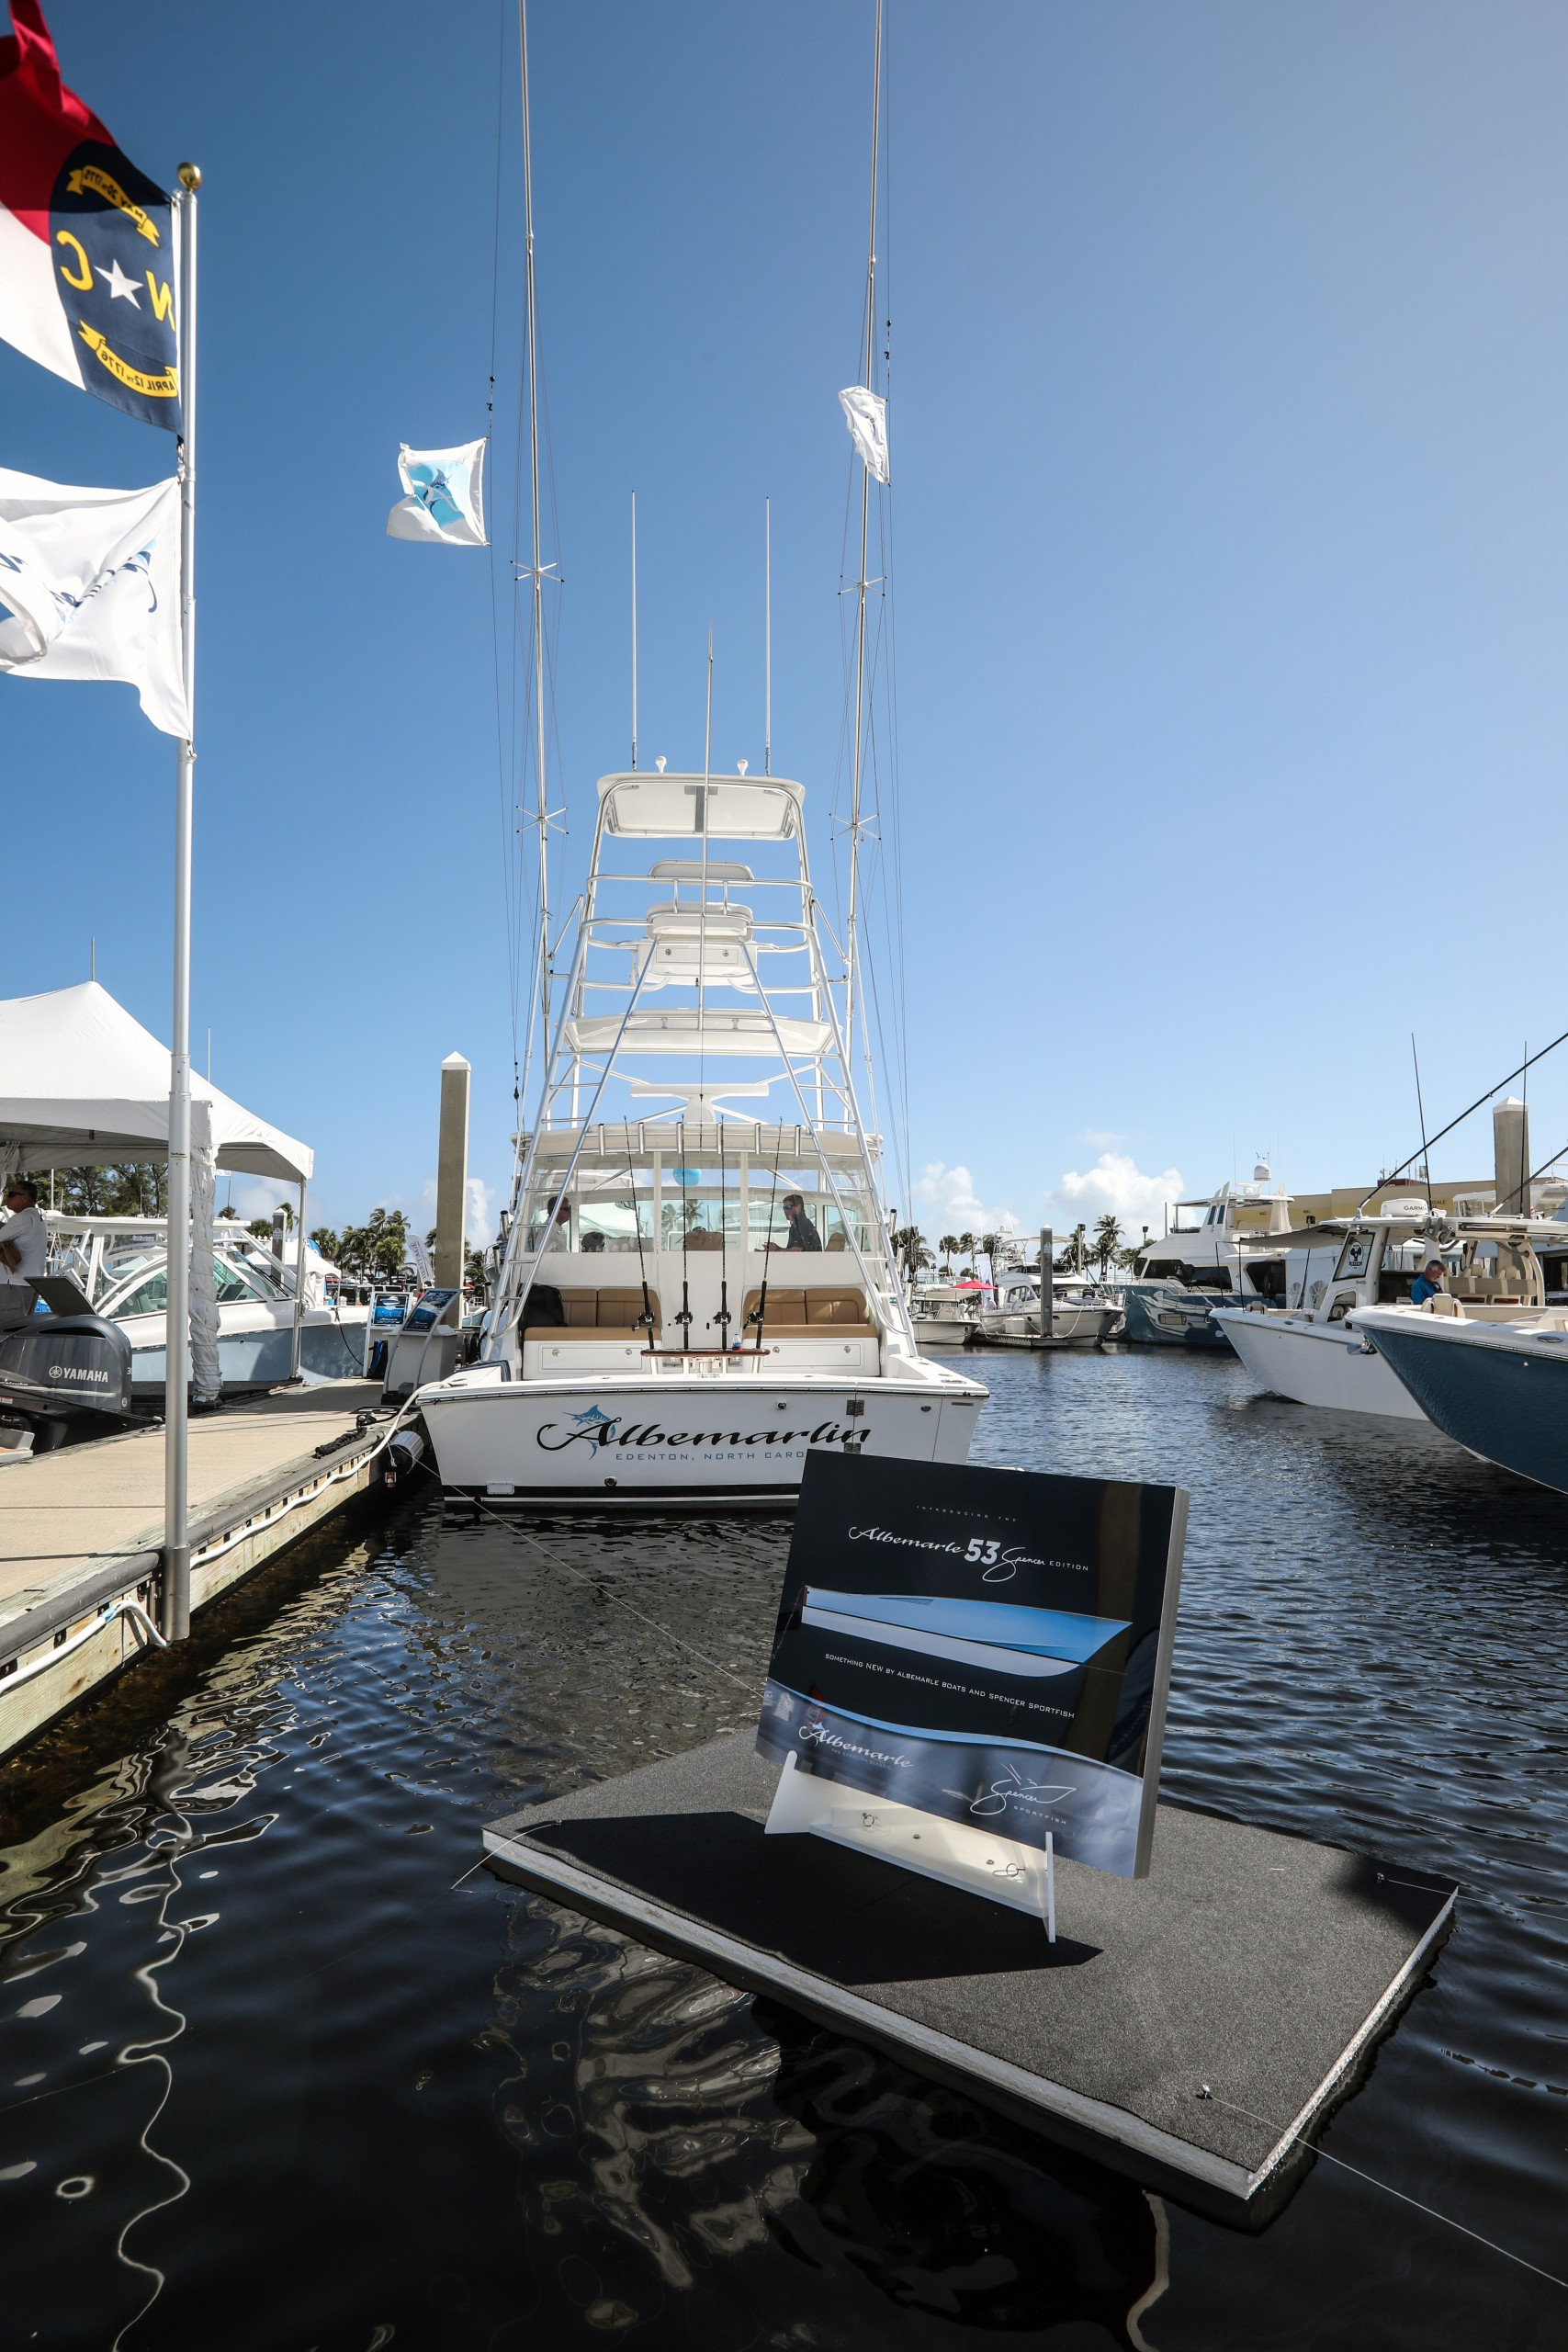 albemarle and spencer yachts on display at the fort lauderdale international boat show